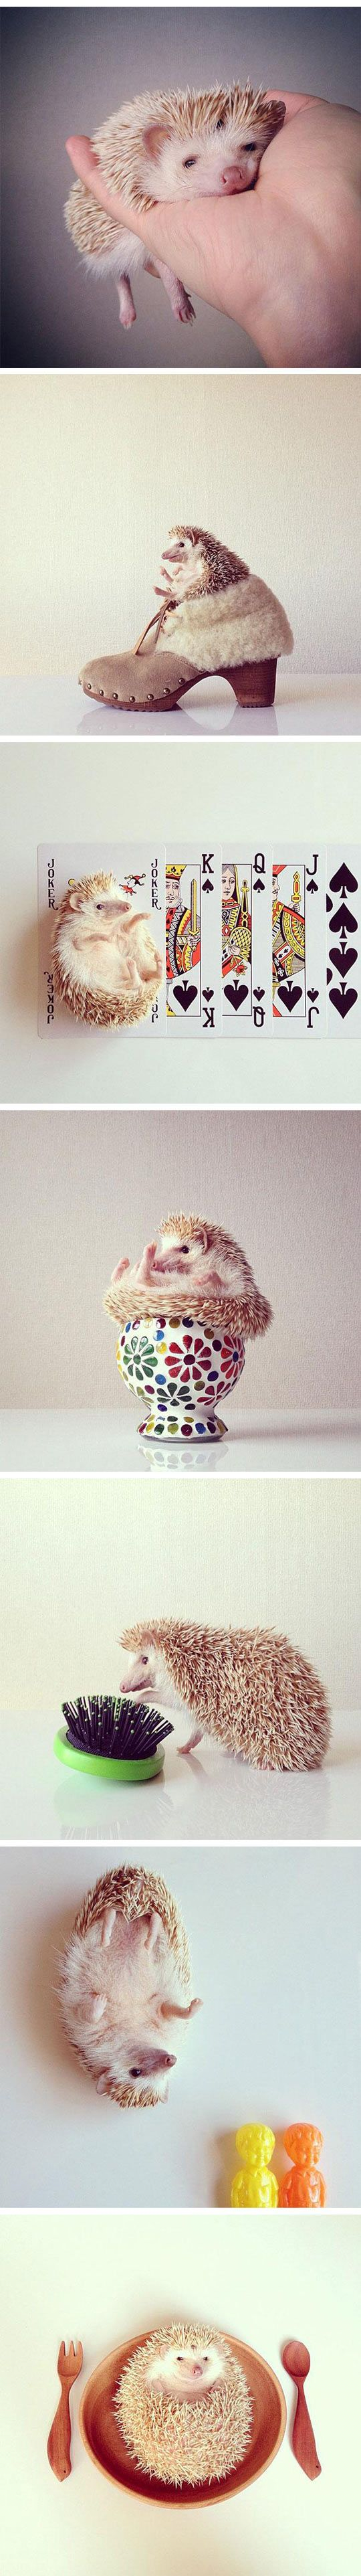 how is sonic a hedge hog? He makes them seem so hard core... they are precious little lazy pups! <3